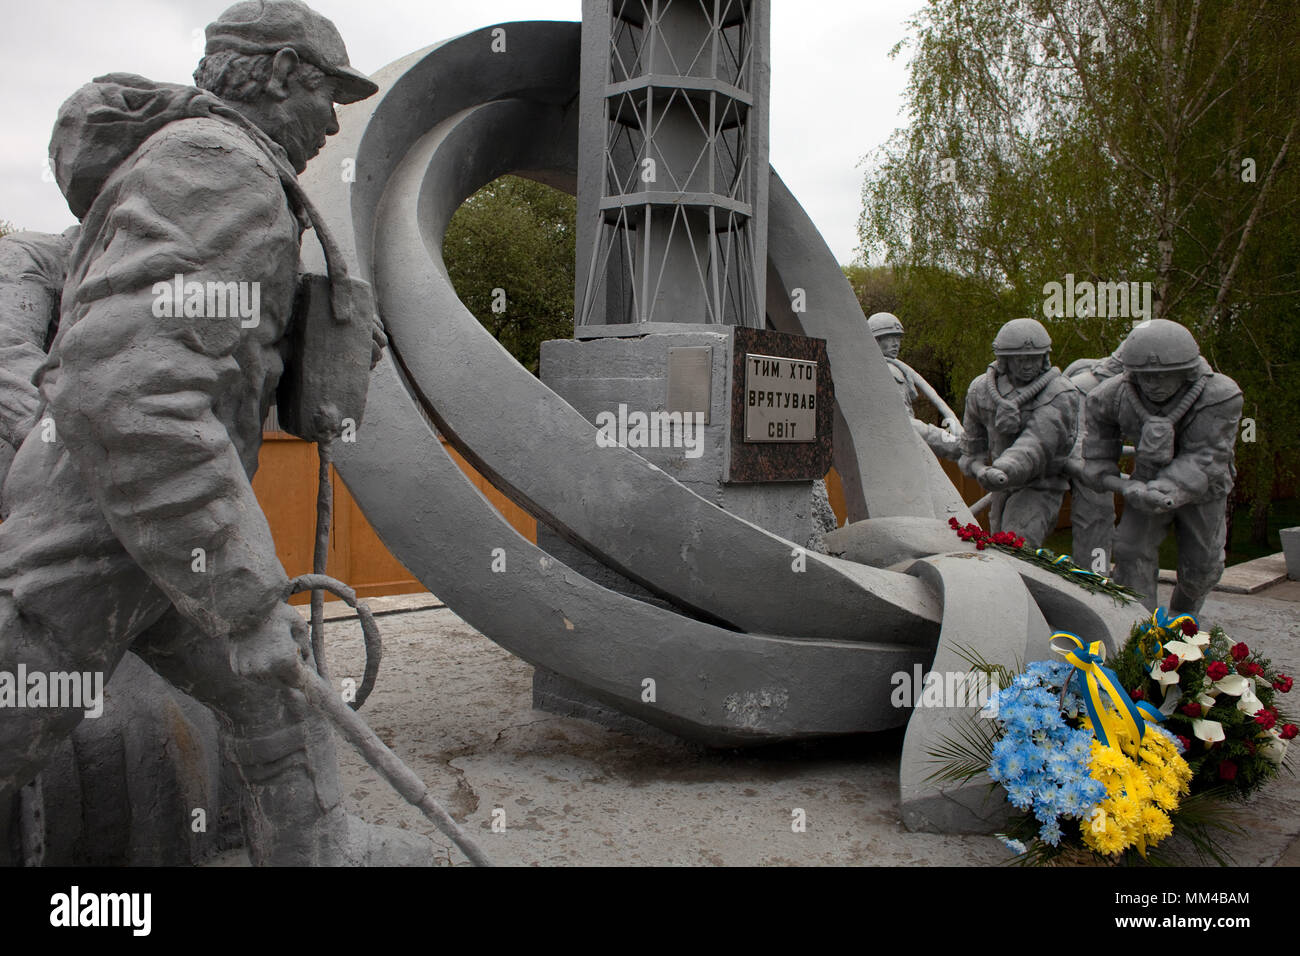 Monument to the Chernobyl firefighters, Chernobyl - Stock Image